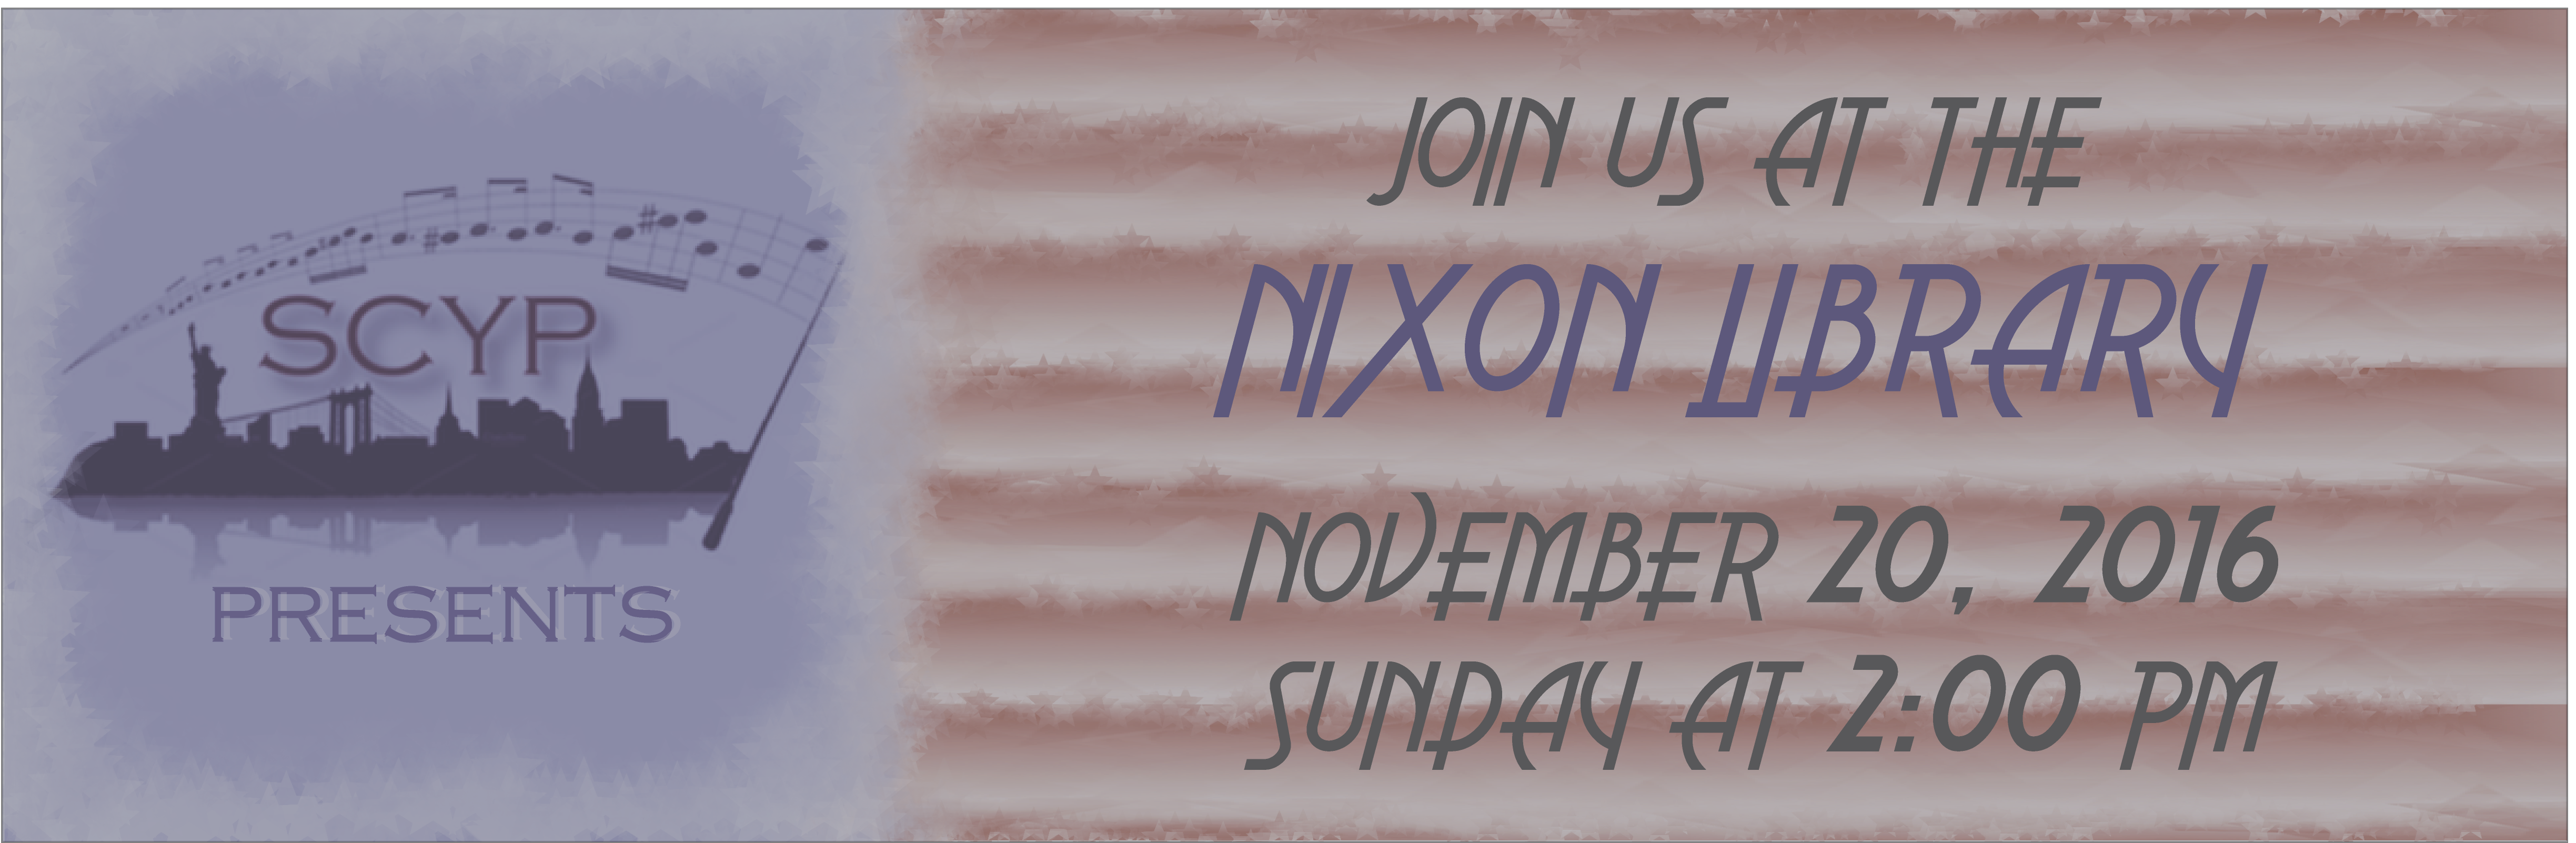 nixon-preview-slider-past-concert